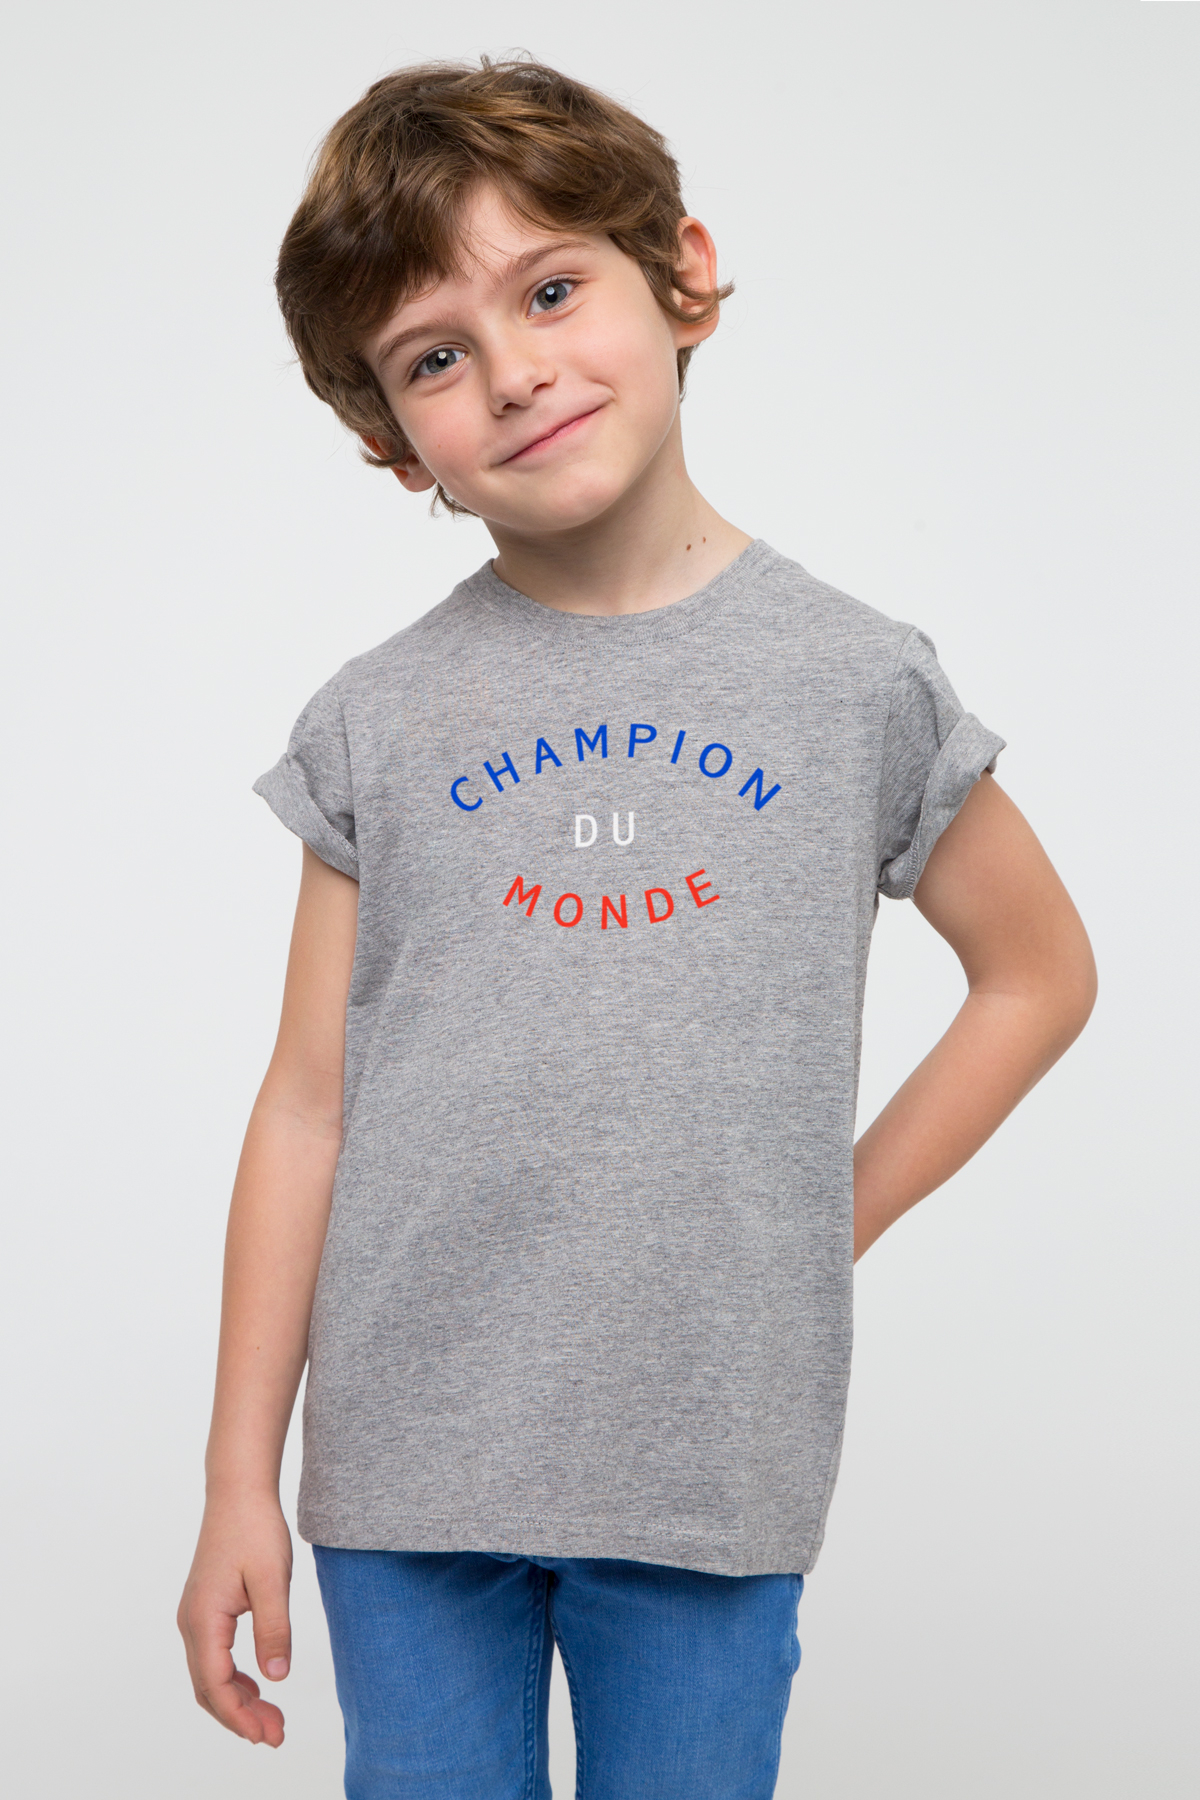 Photo de Tshirt kids Tshirt CHAMPION chez French Disorder